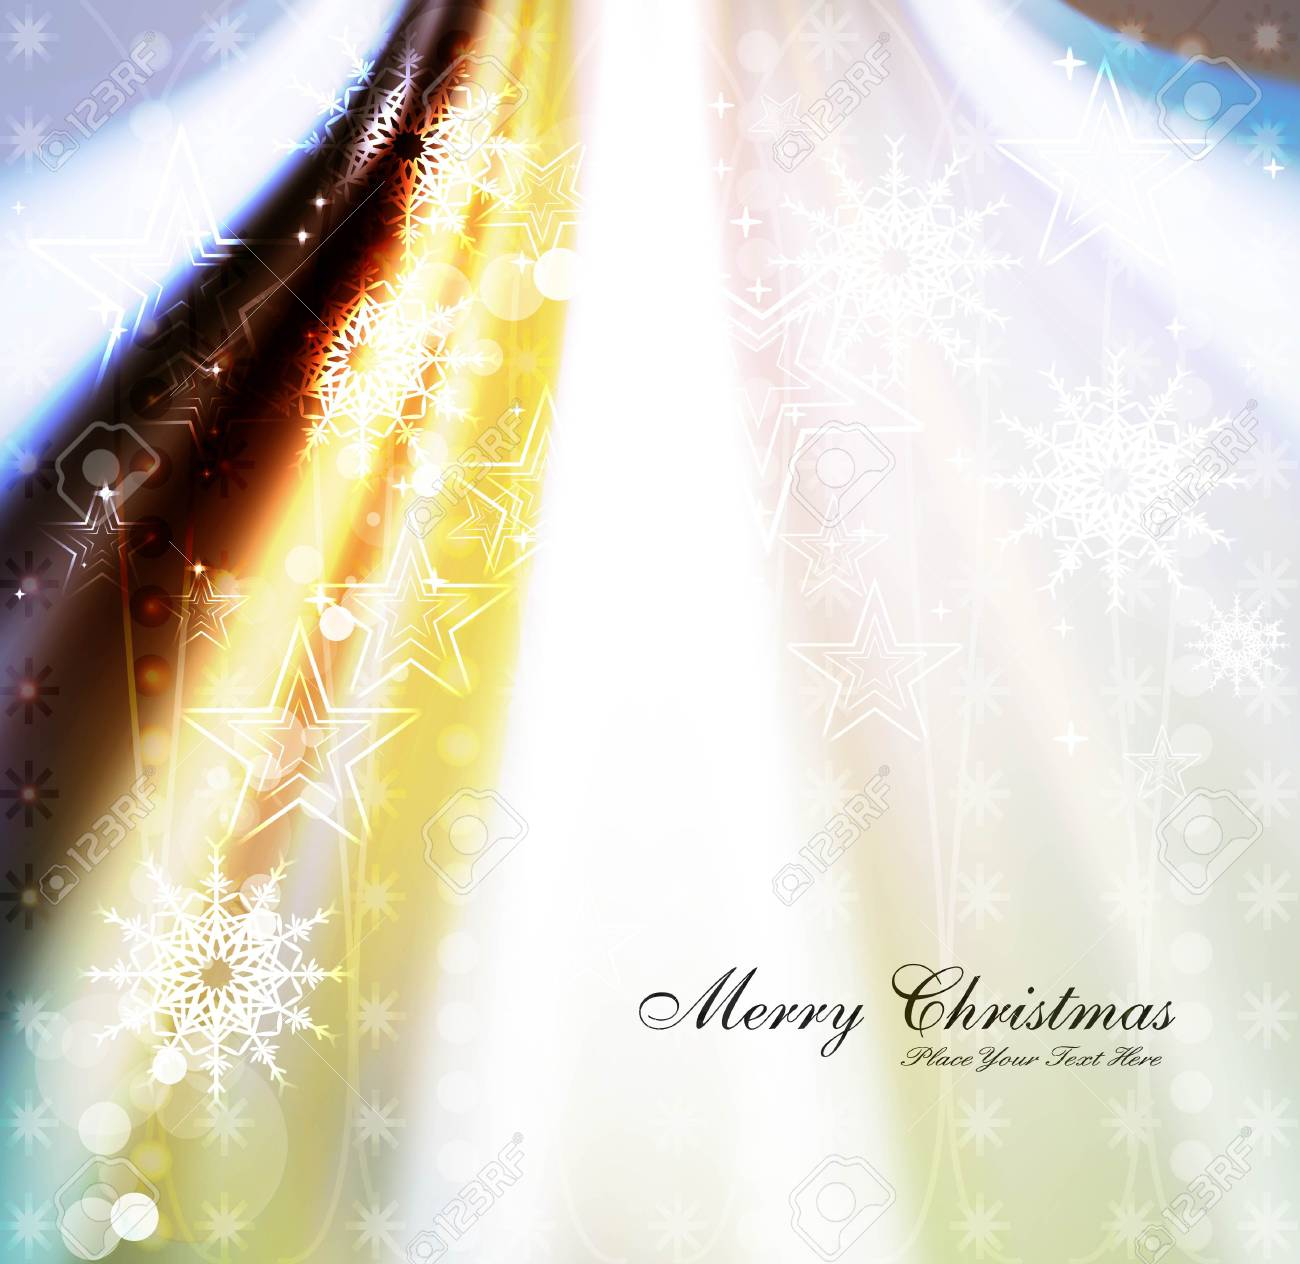 merry christmas celebration colorful wave card design vector Stock Vector - 18117196